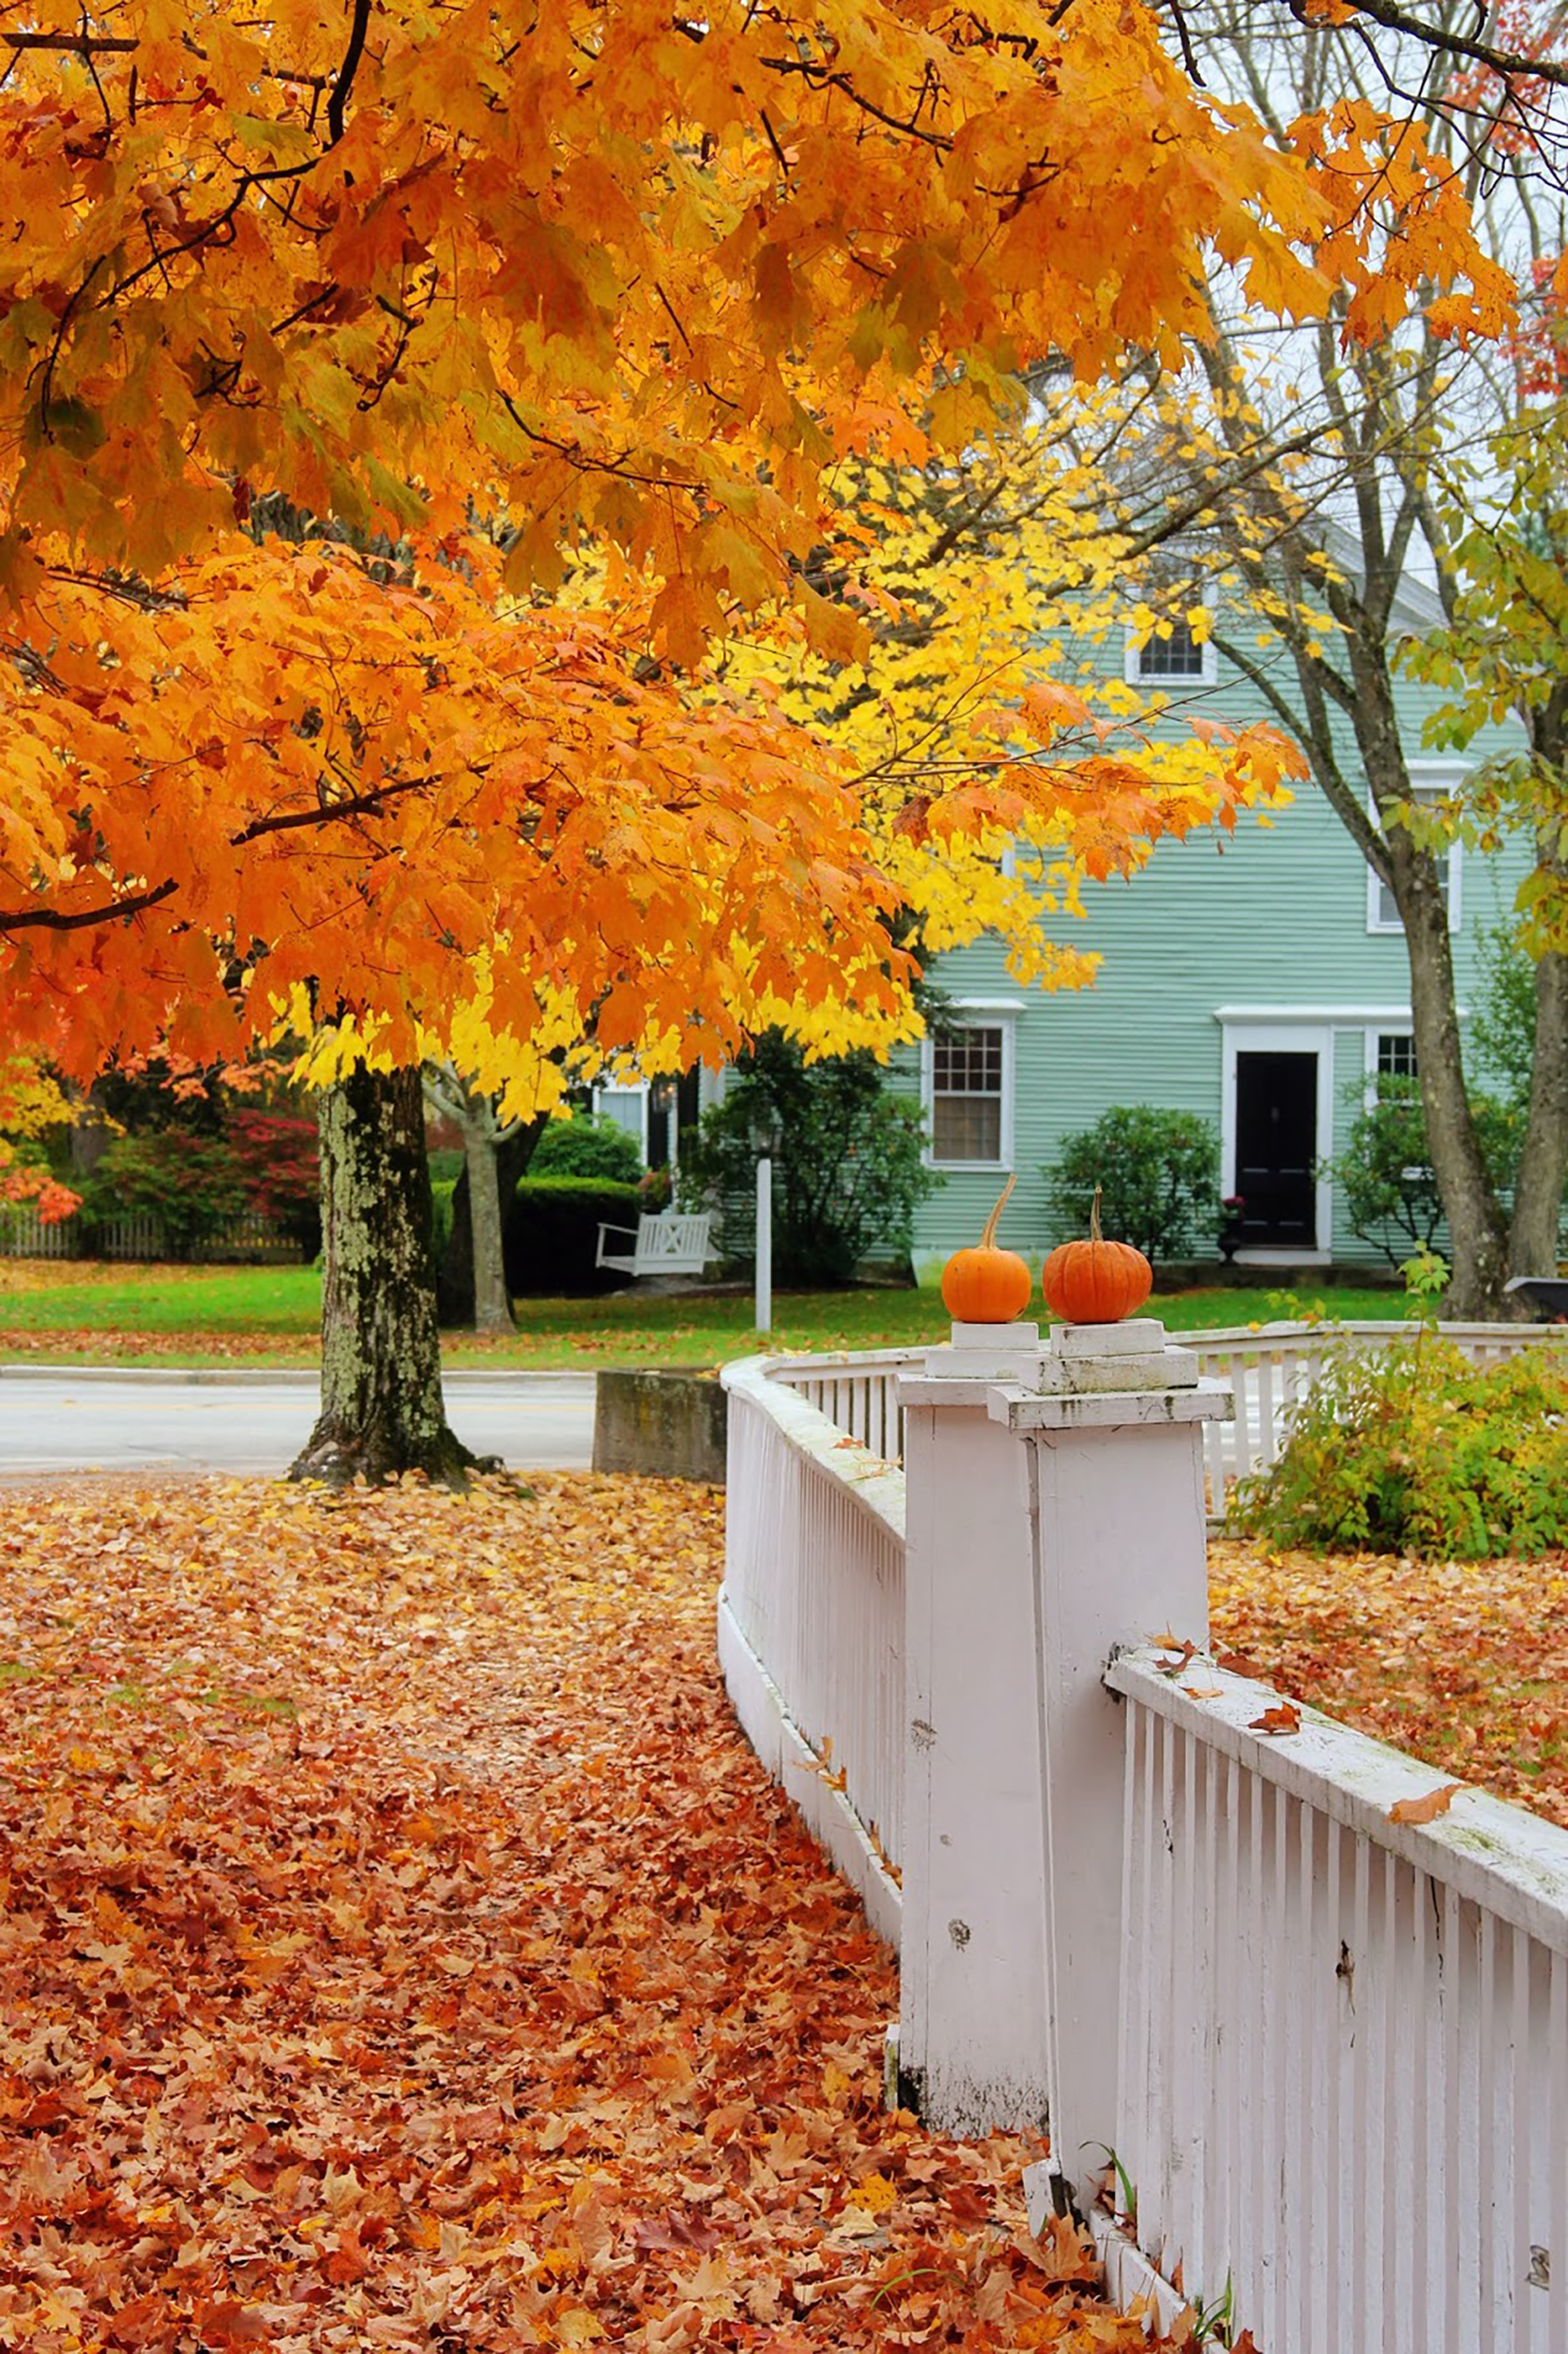 newengland_autunno